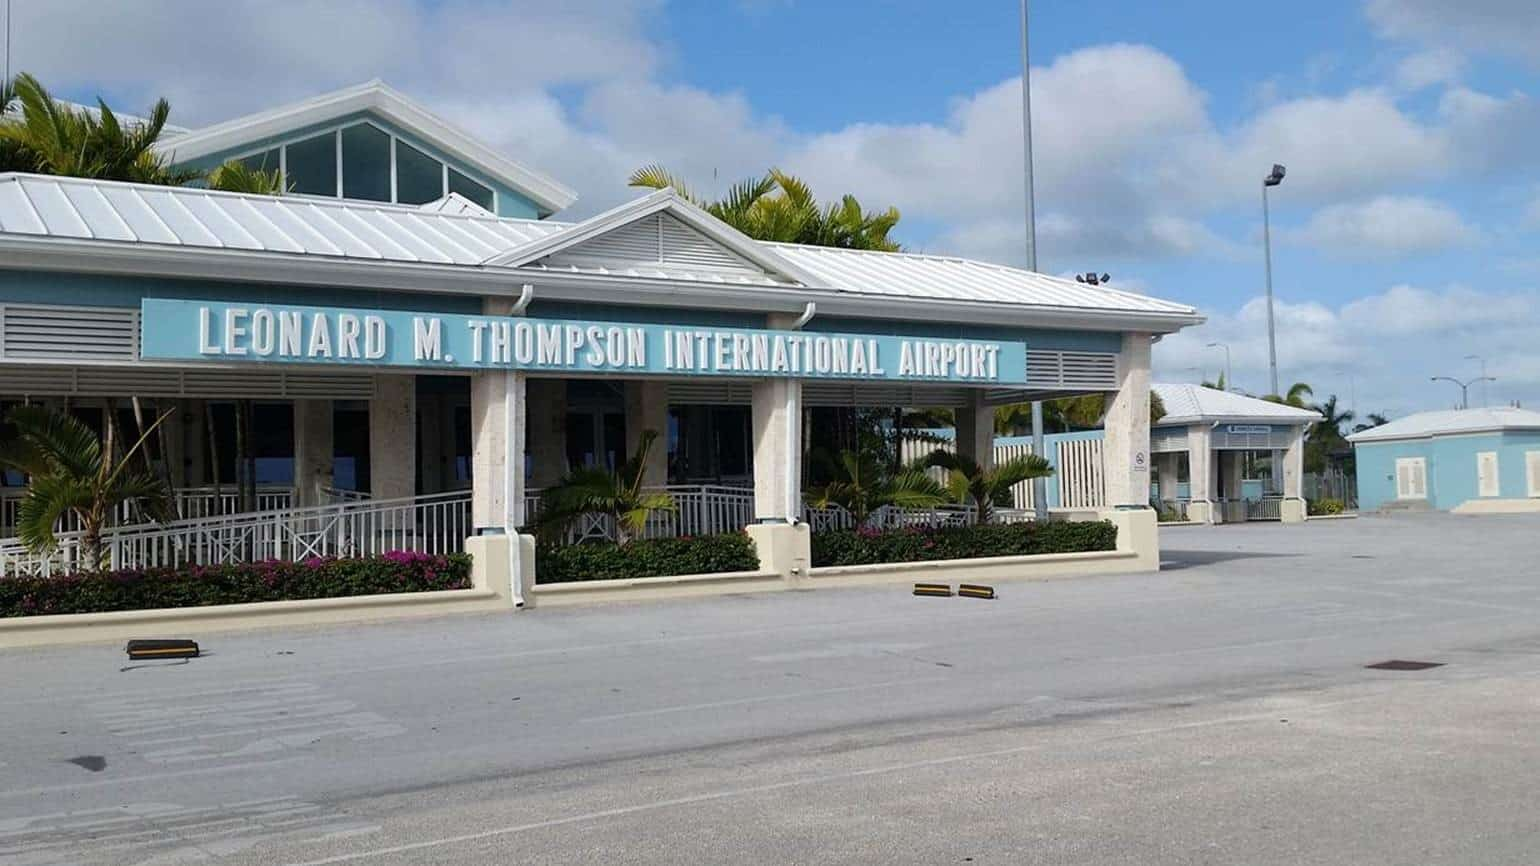 Leonard M. Thompson International Airport (MHH)